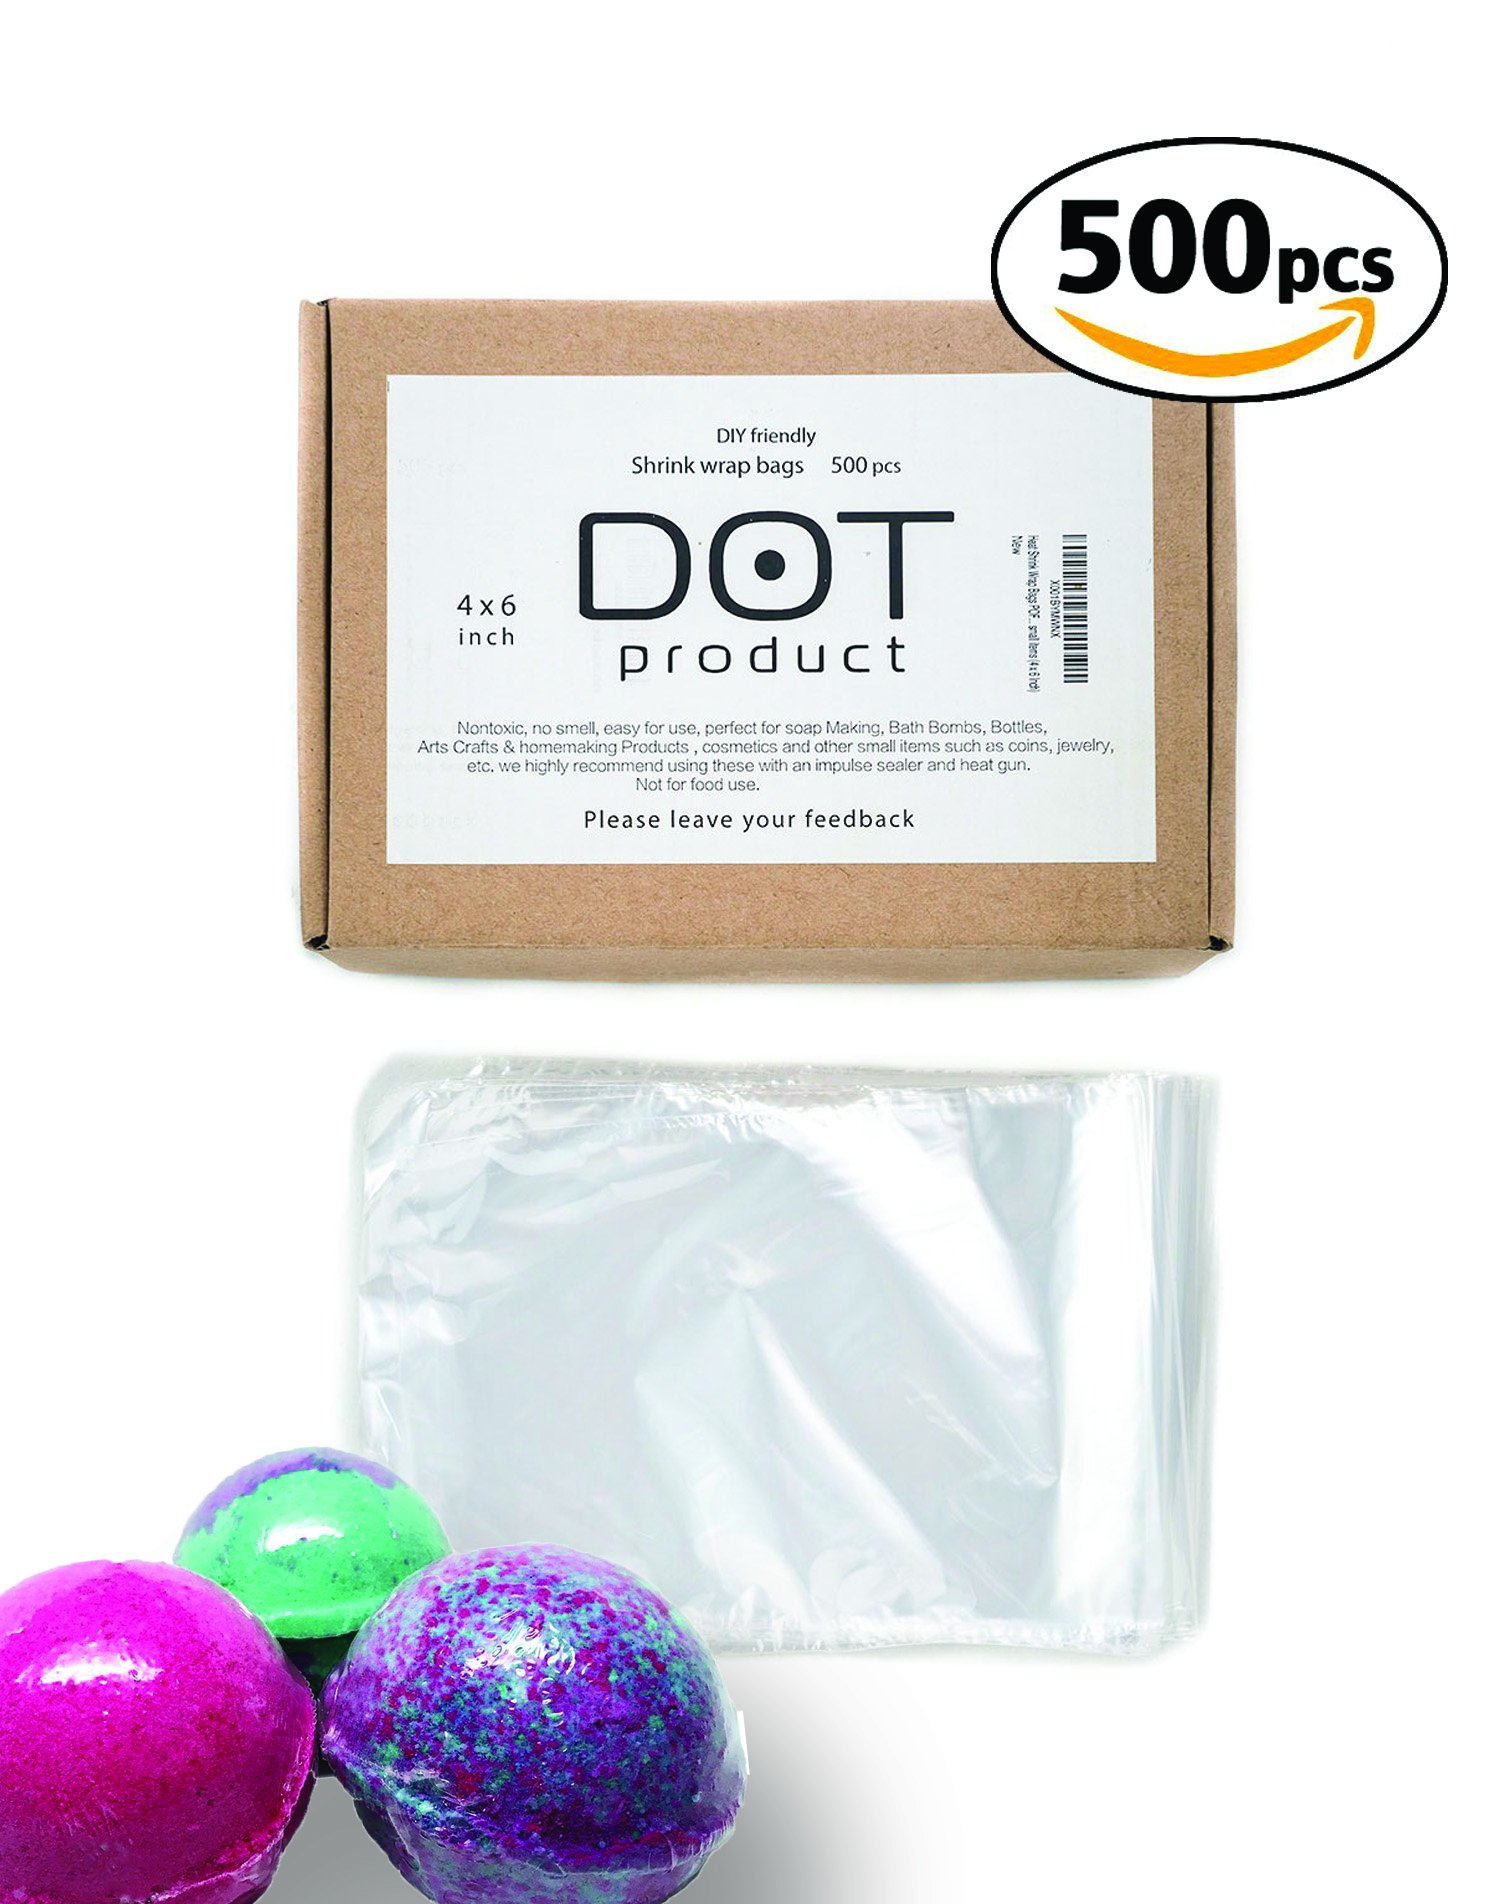 Bath Bombs R Bottles Crafts /& DIY Products by Mighty Gadget - 100 Gauge 50 pcs Quality 9 x 12 inch PVC Shrink Wrap Bags for Books Soaps